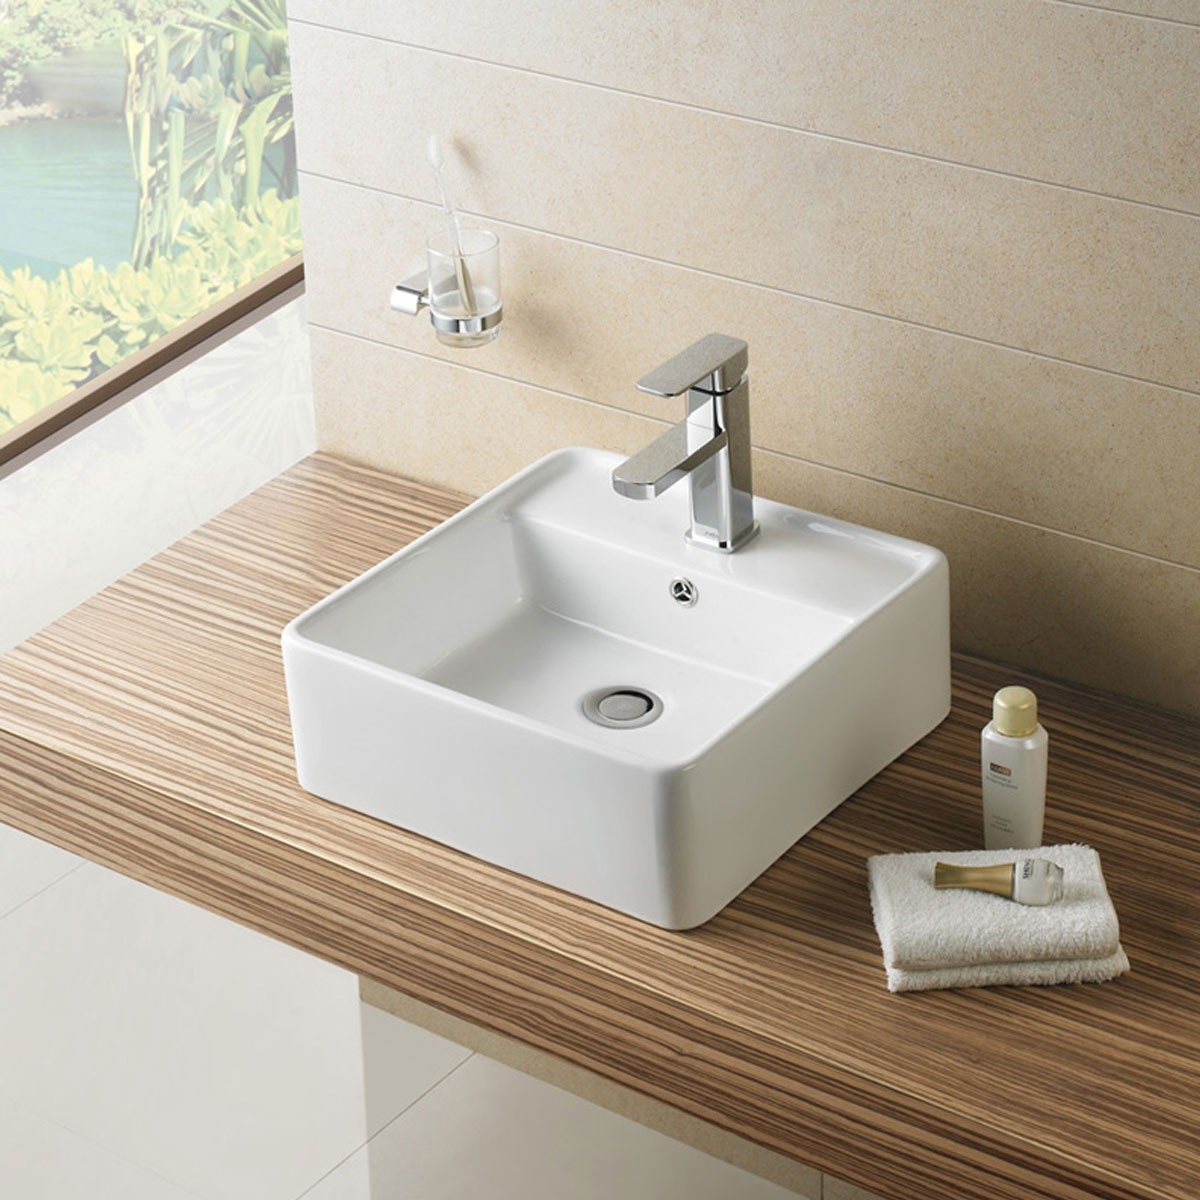 White Square Ceramic Above Counter Basin Vessel Vanity Sink (CL-1098)